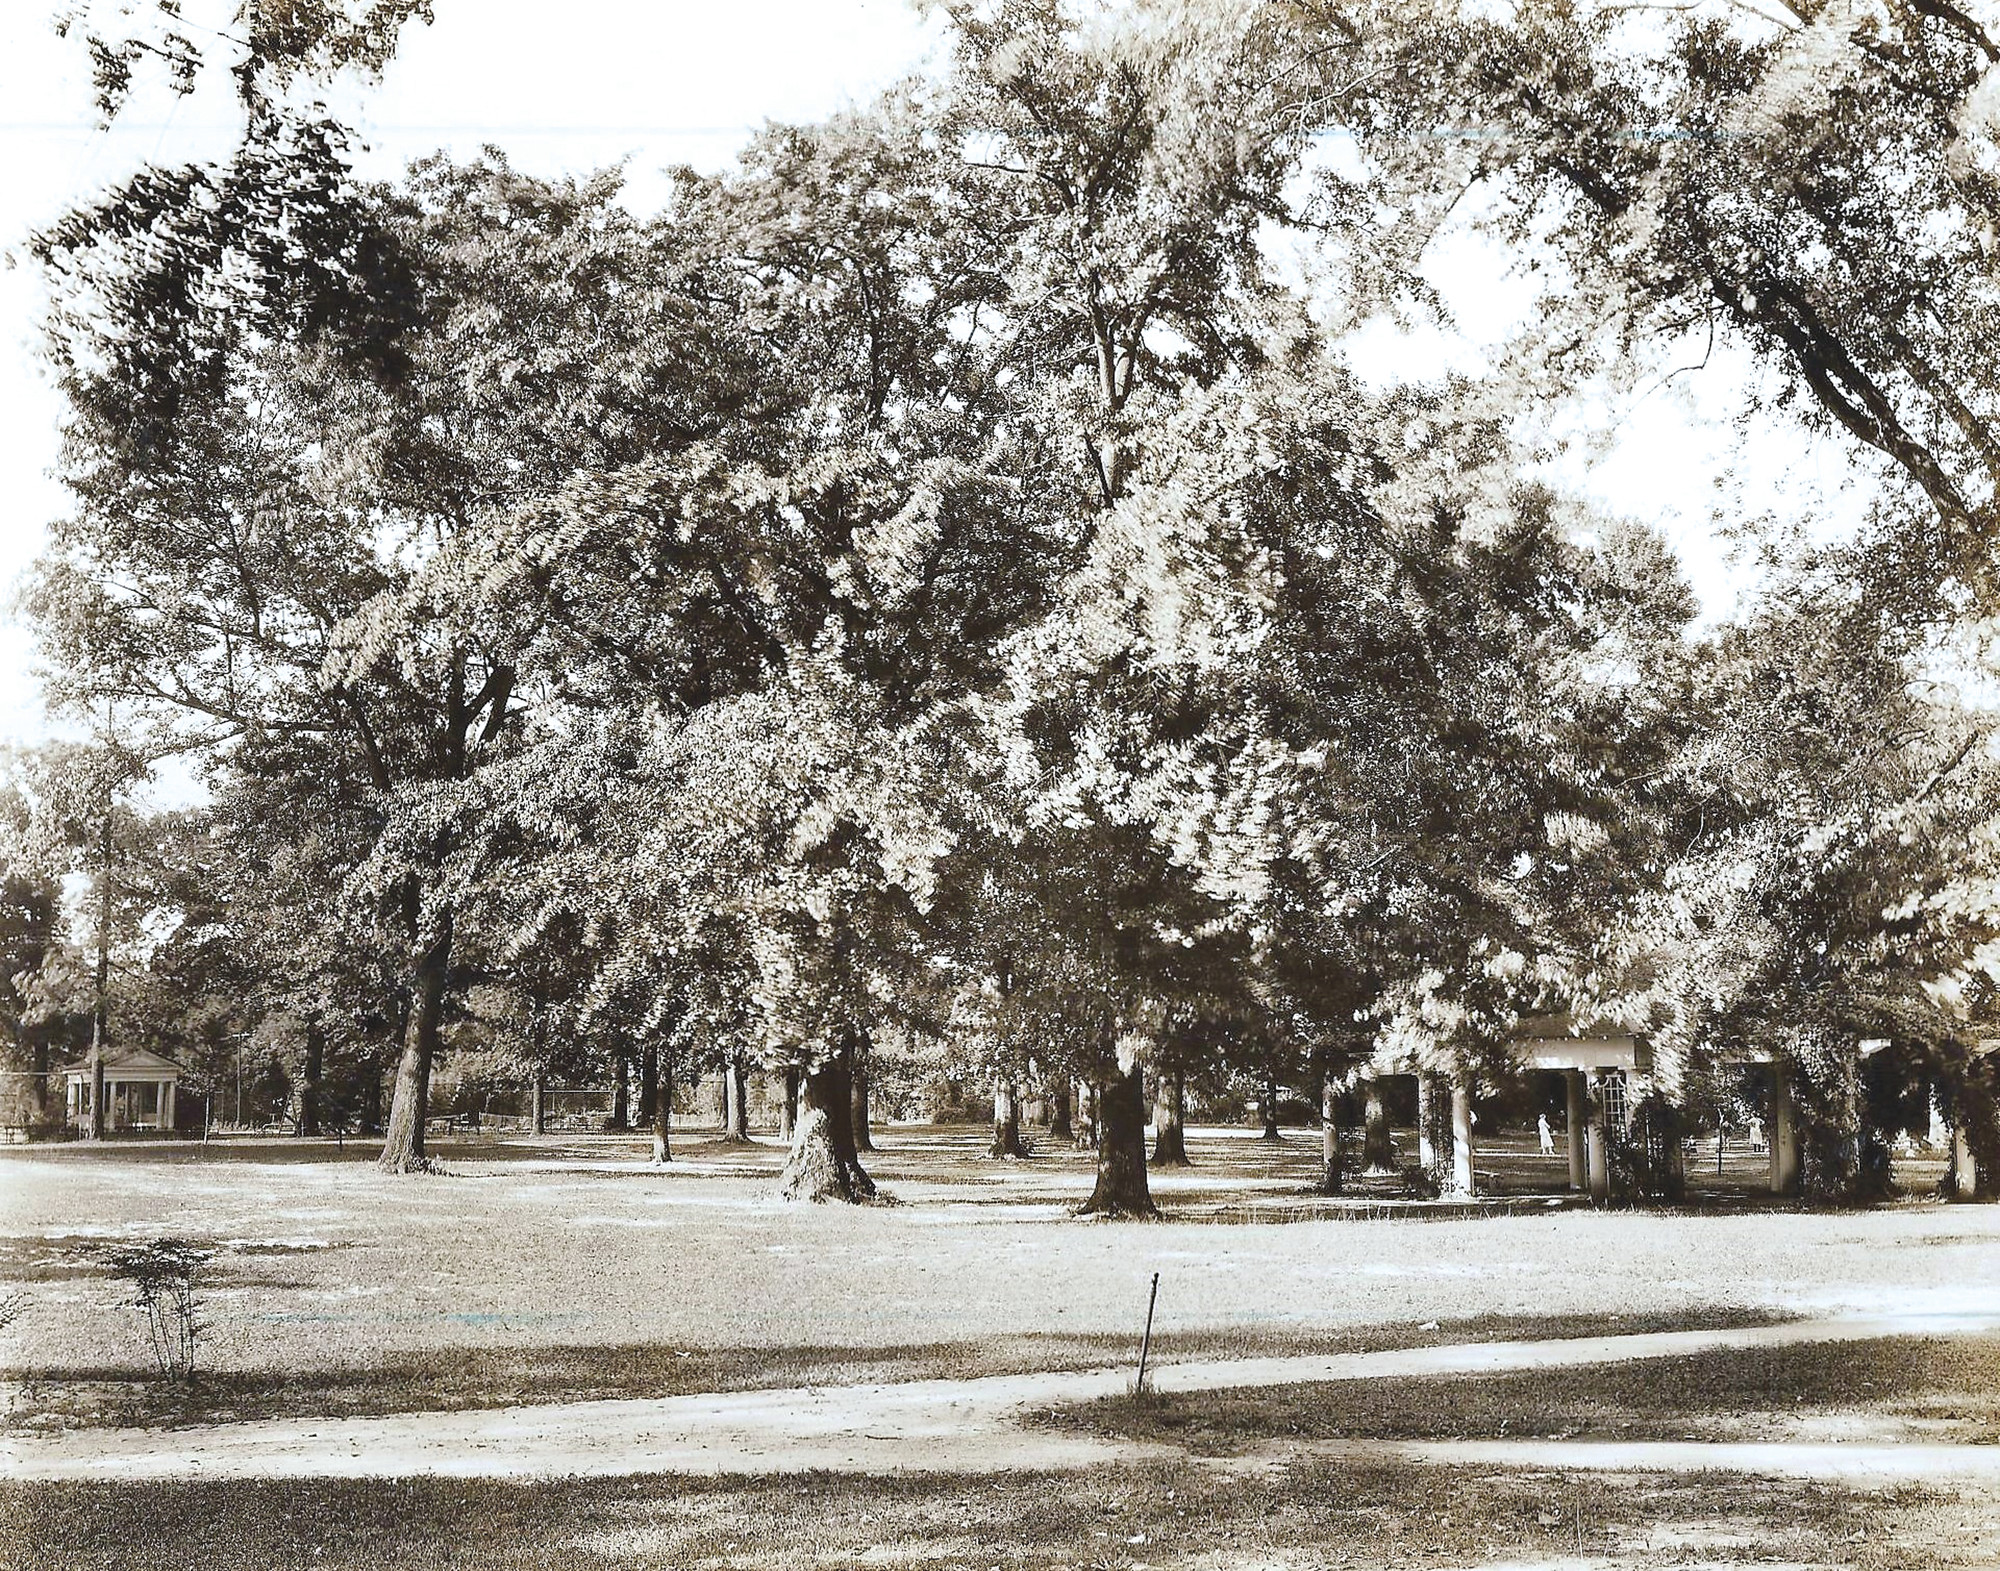 Memorial Park was designed by Julia Lester Dillon and remains one of the most beautiful parks in Sumter.